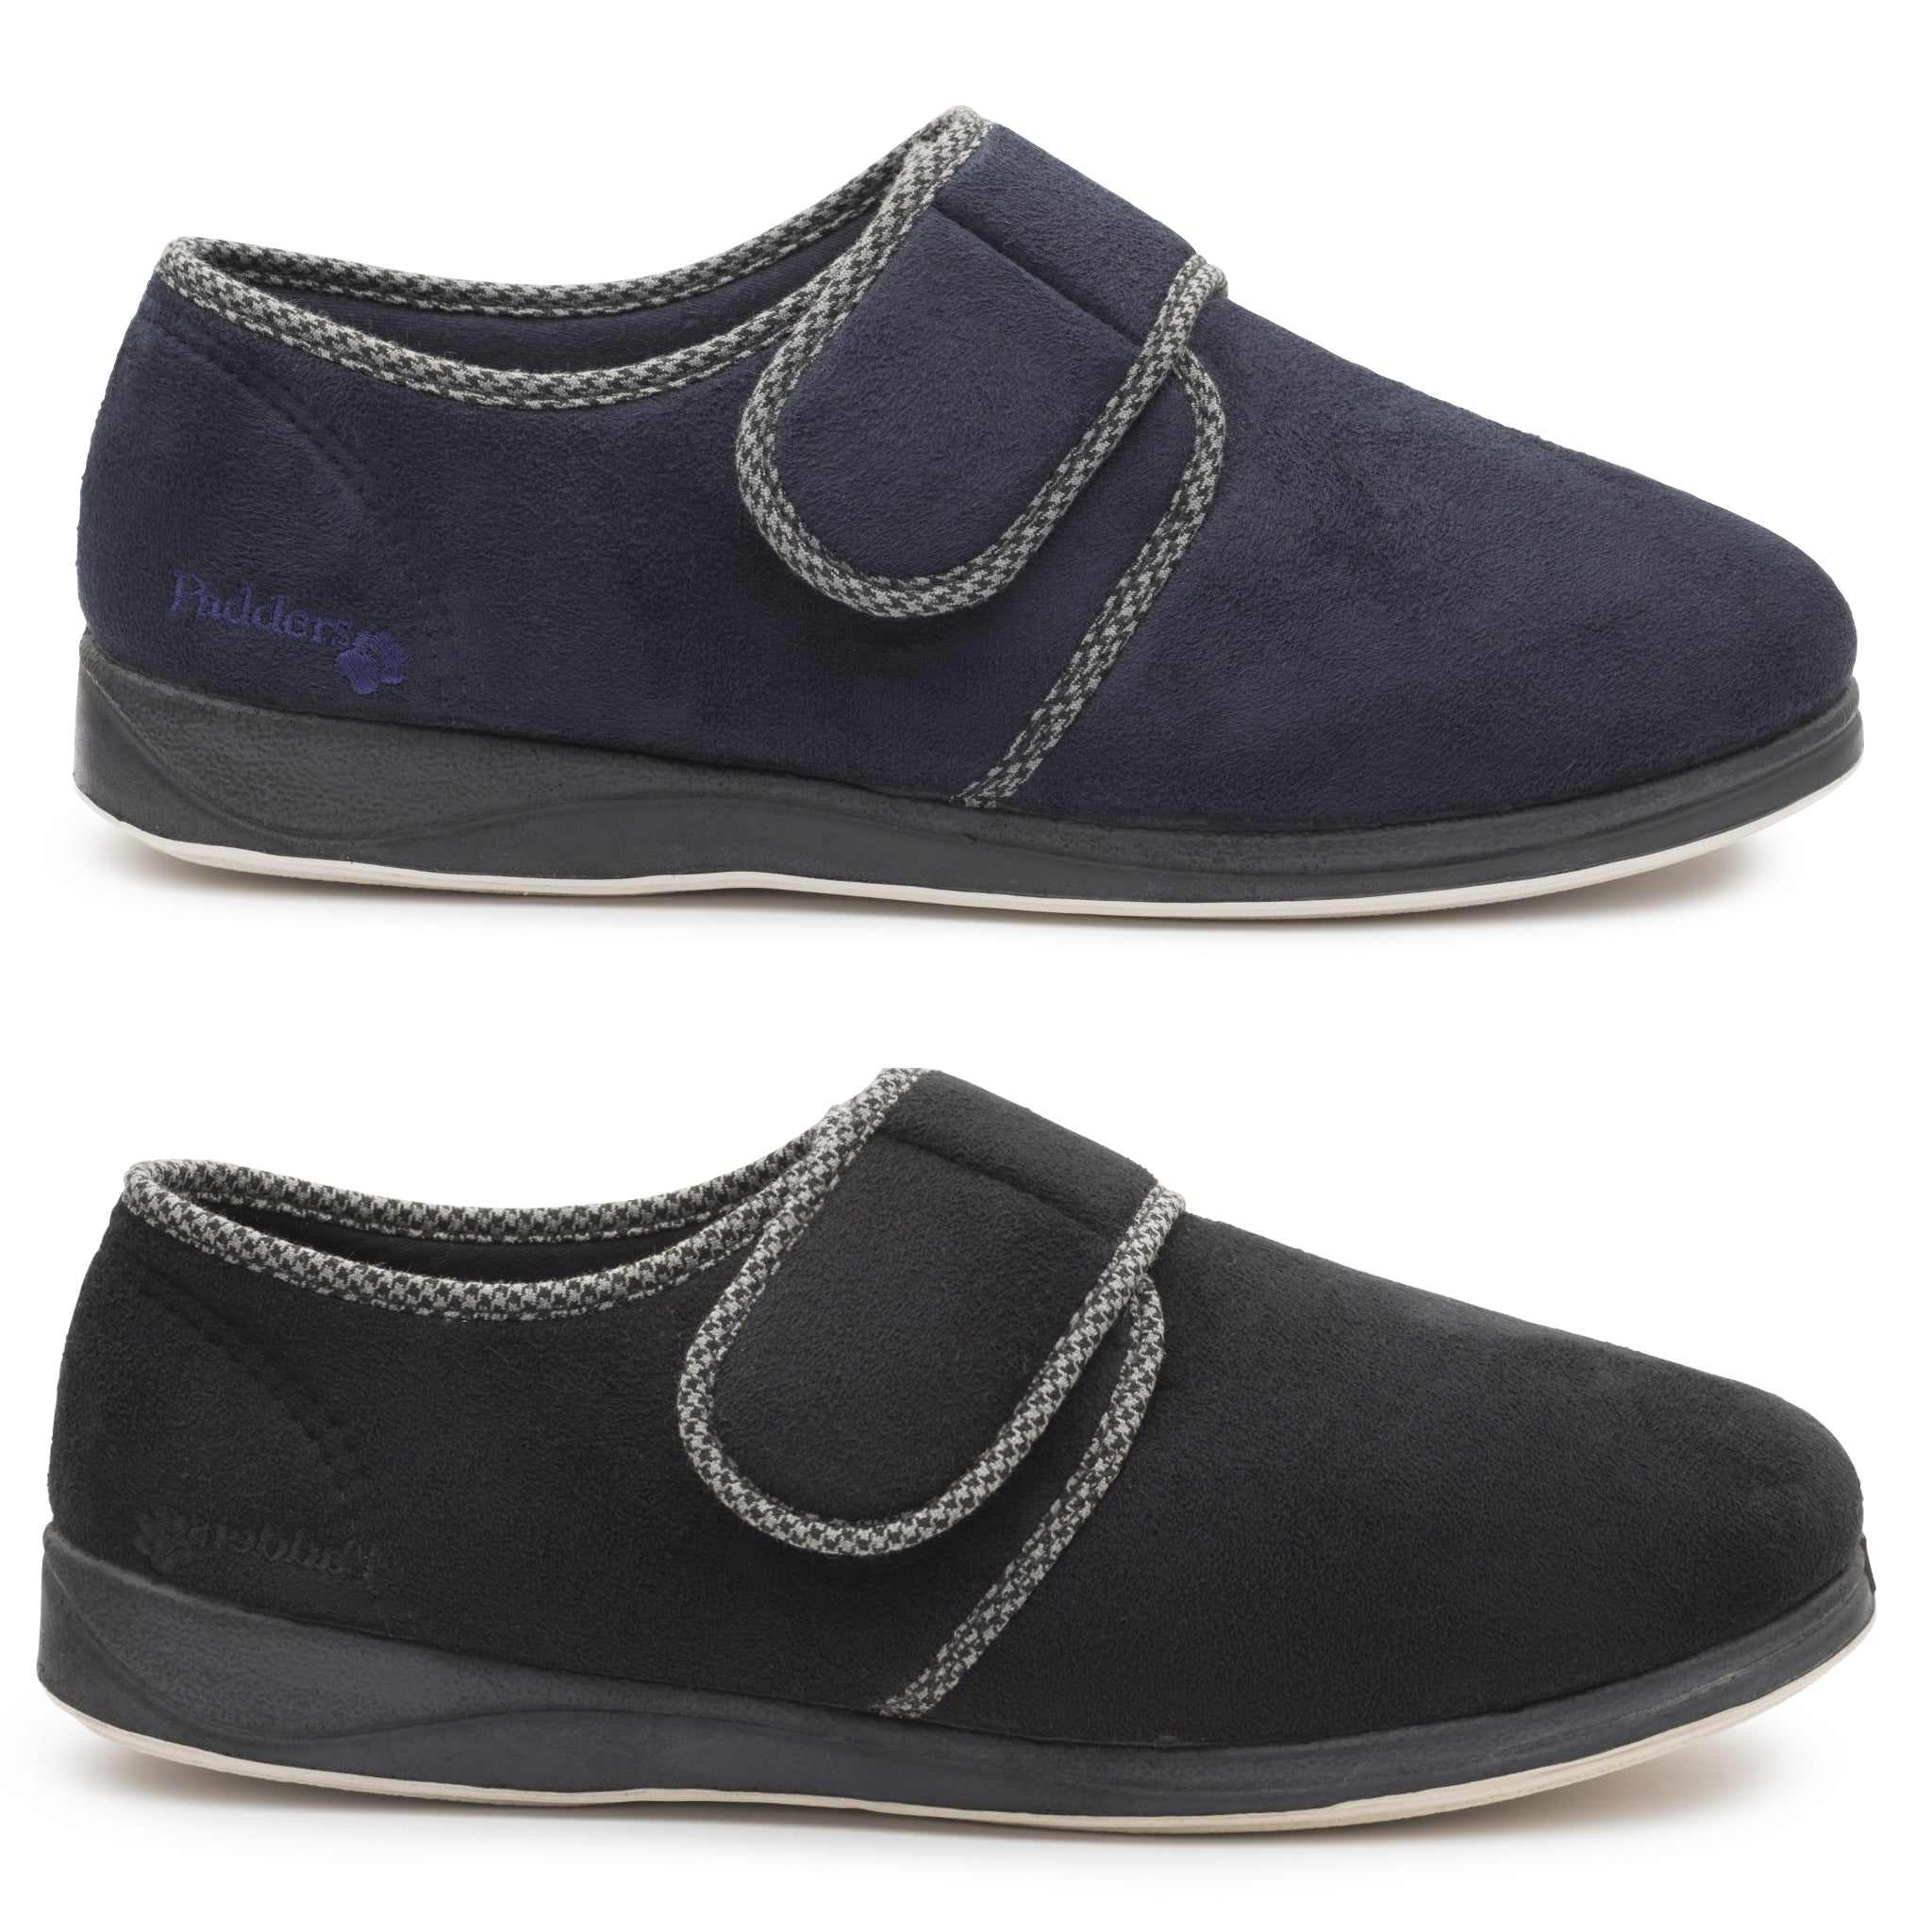 PADDERS HARRY Wide G Fit Mens Velcro Fastening Slipper Navy or Black